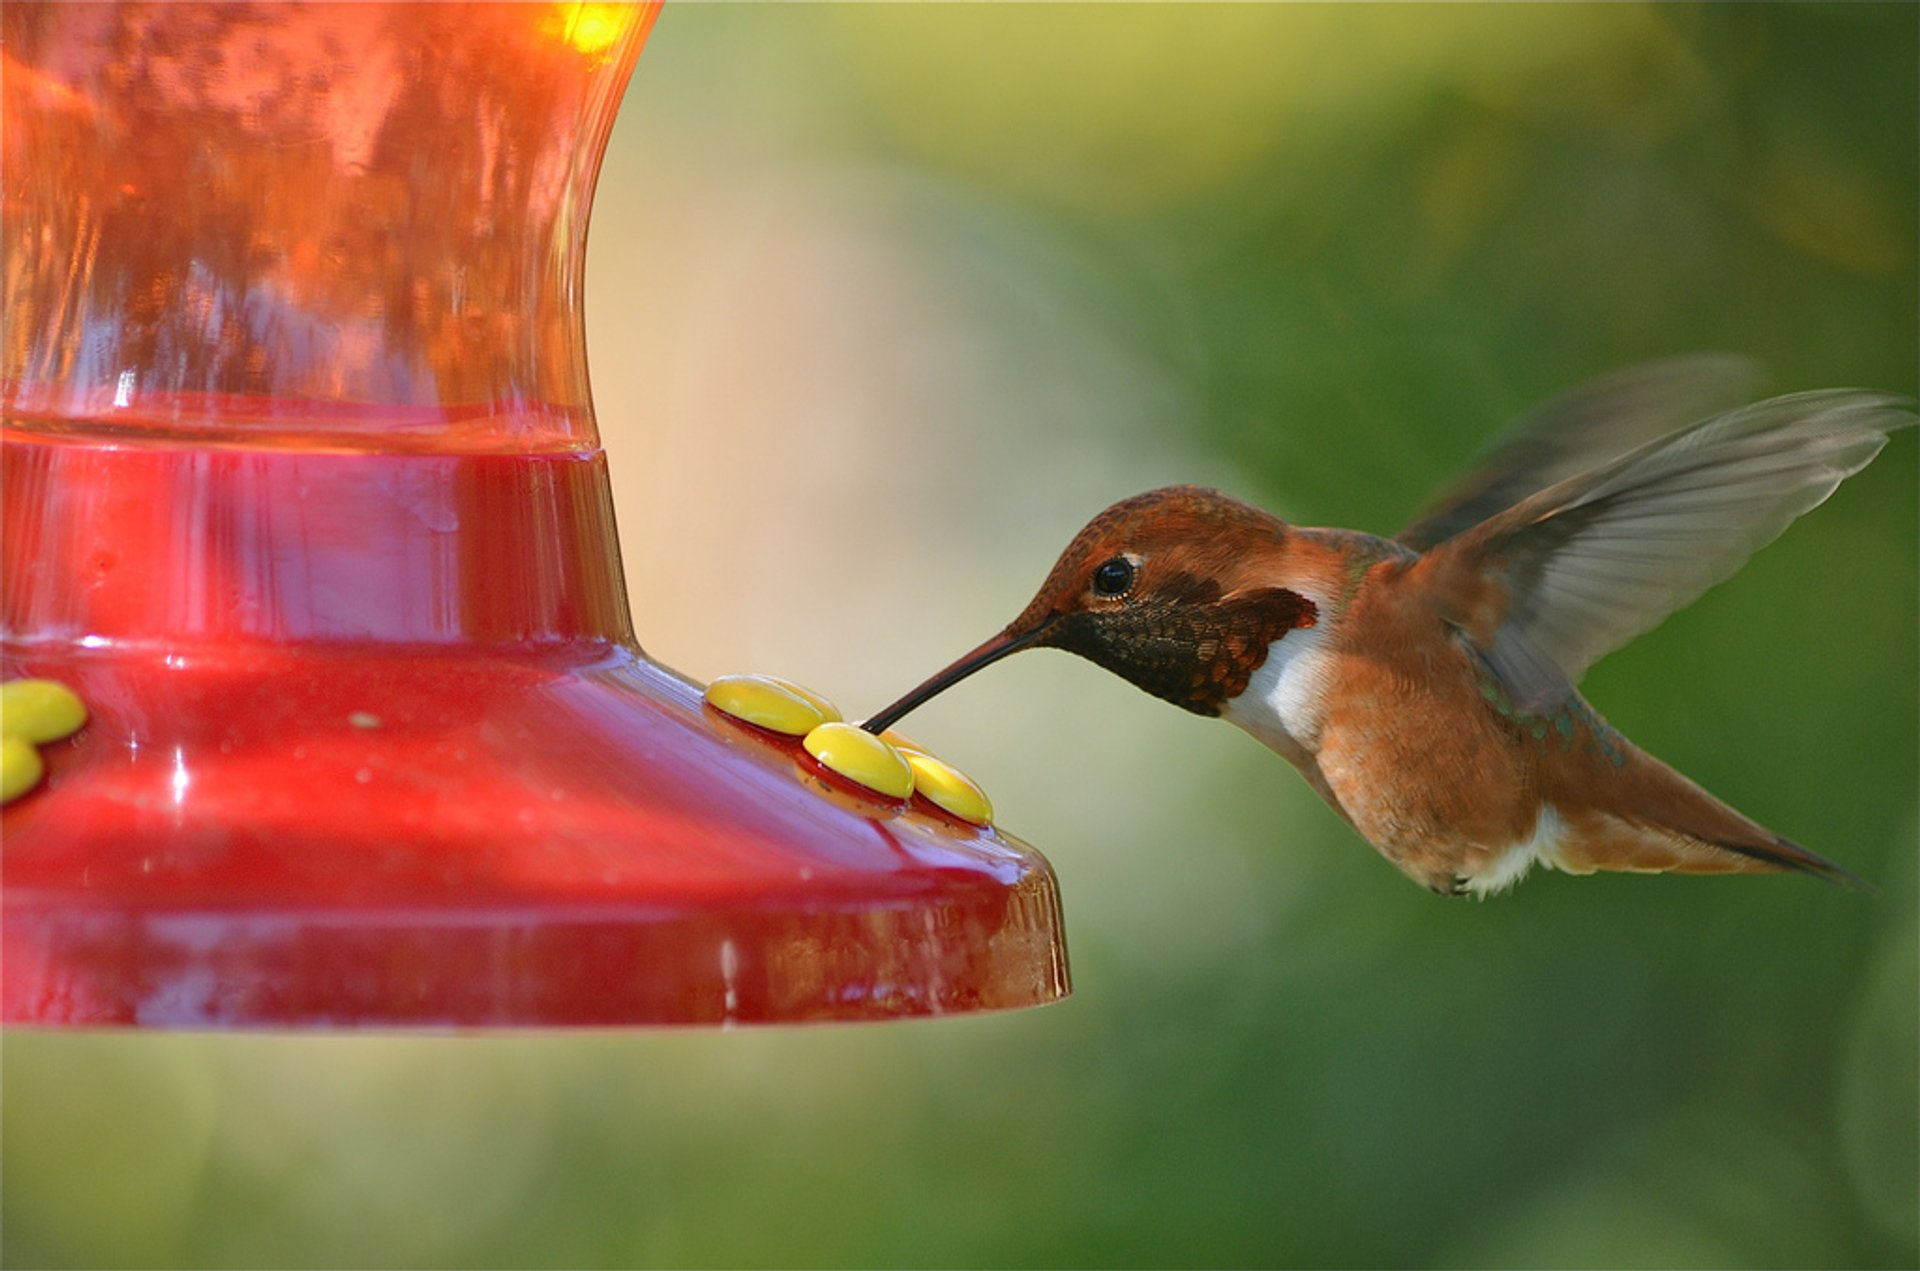 Rufous Hummingbird in North Hills, Los Angeles, CA 2020